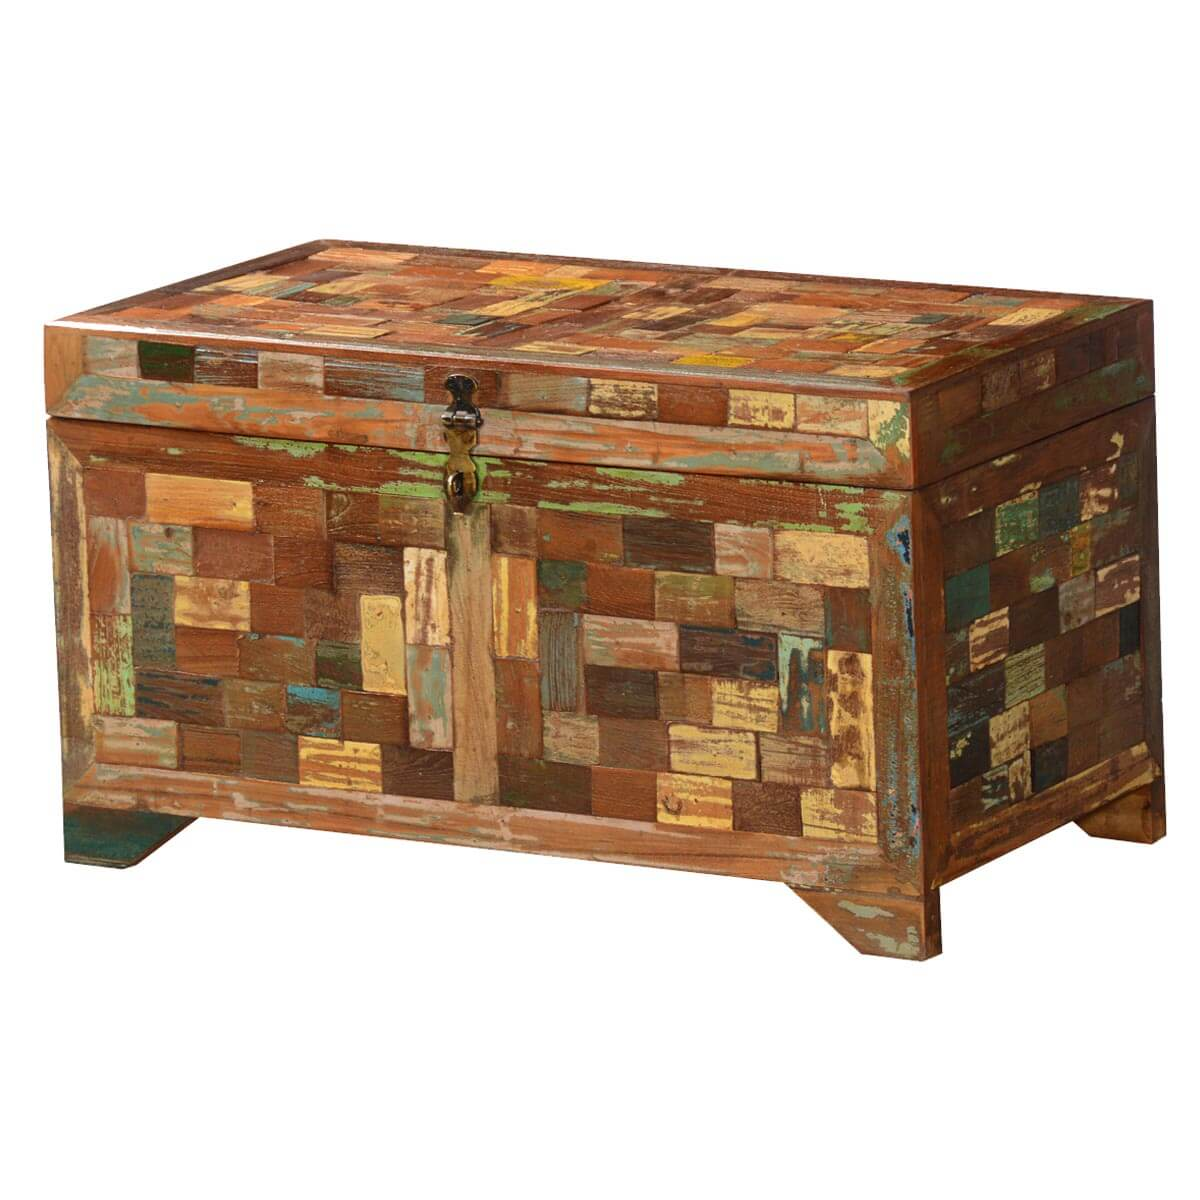 Biehle Handcrafted Reclaimed Wood Mosaic Rustic Storage Trunk